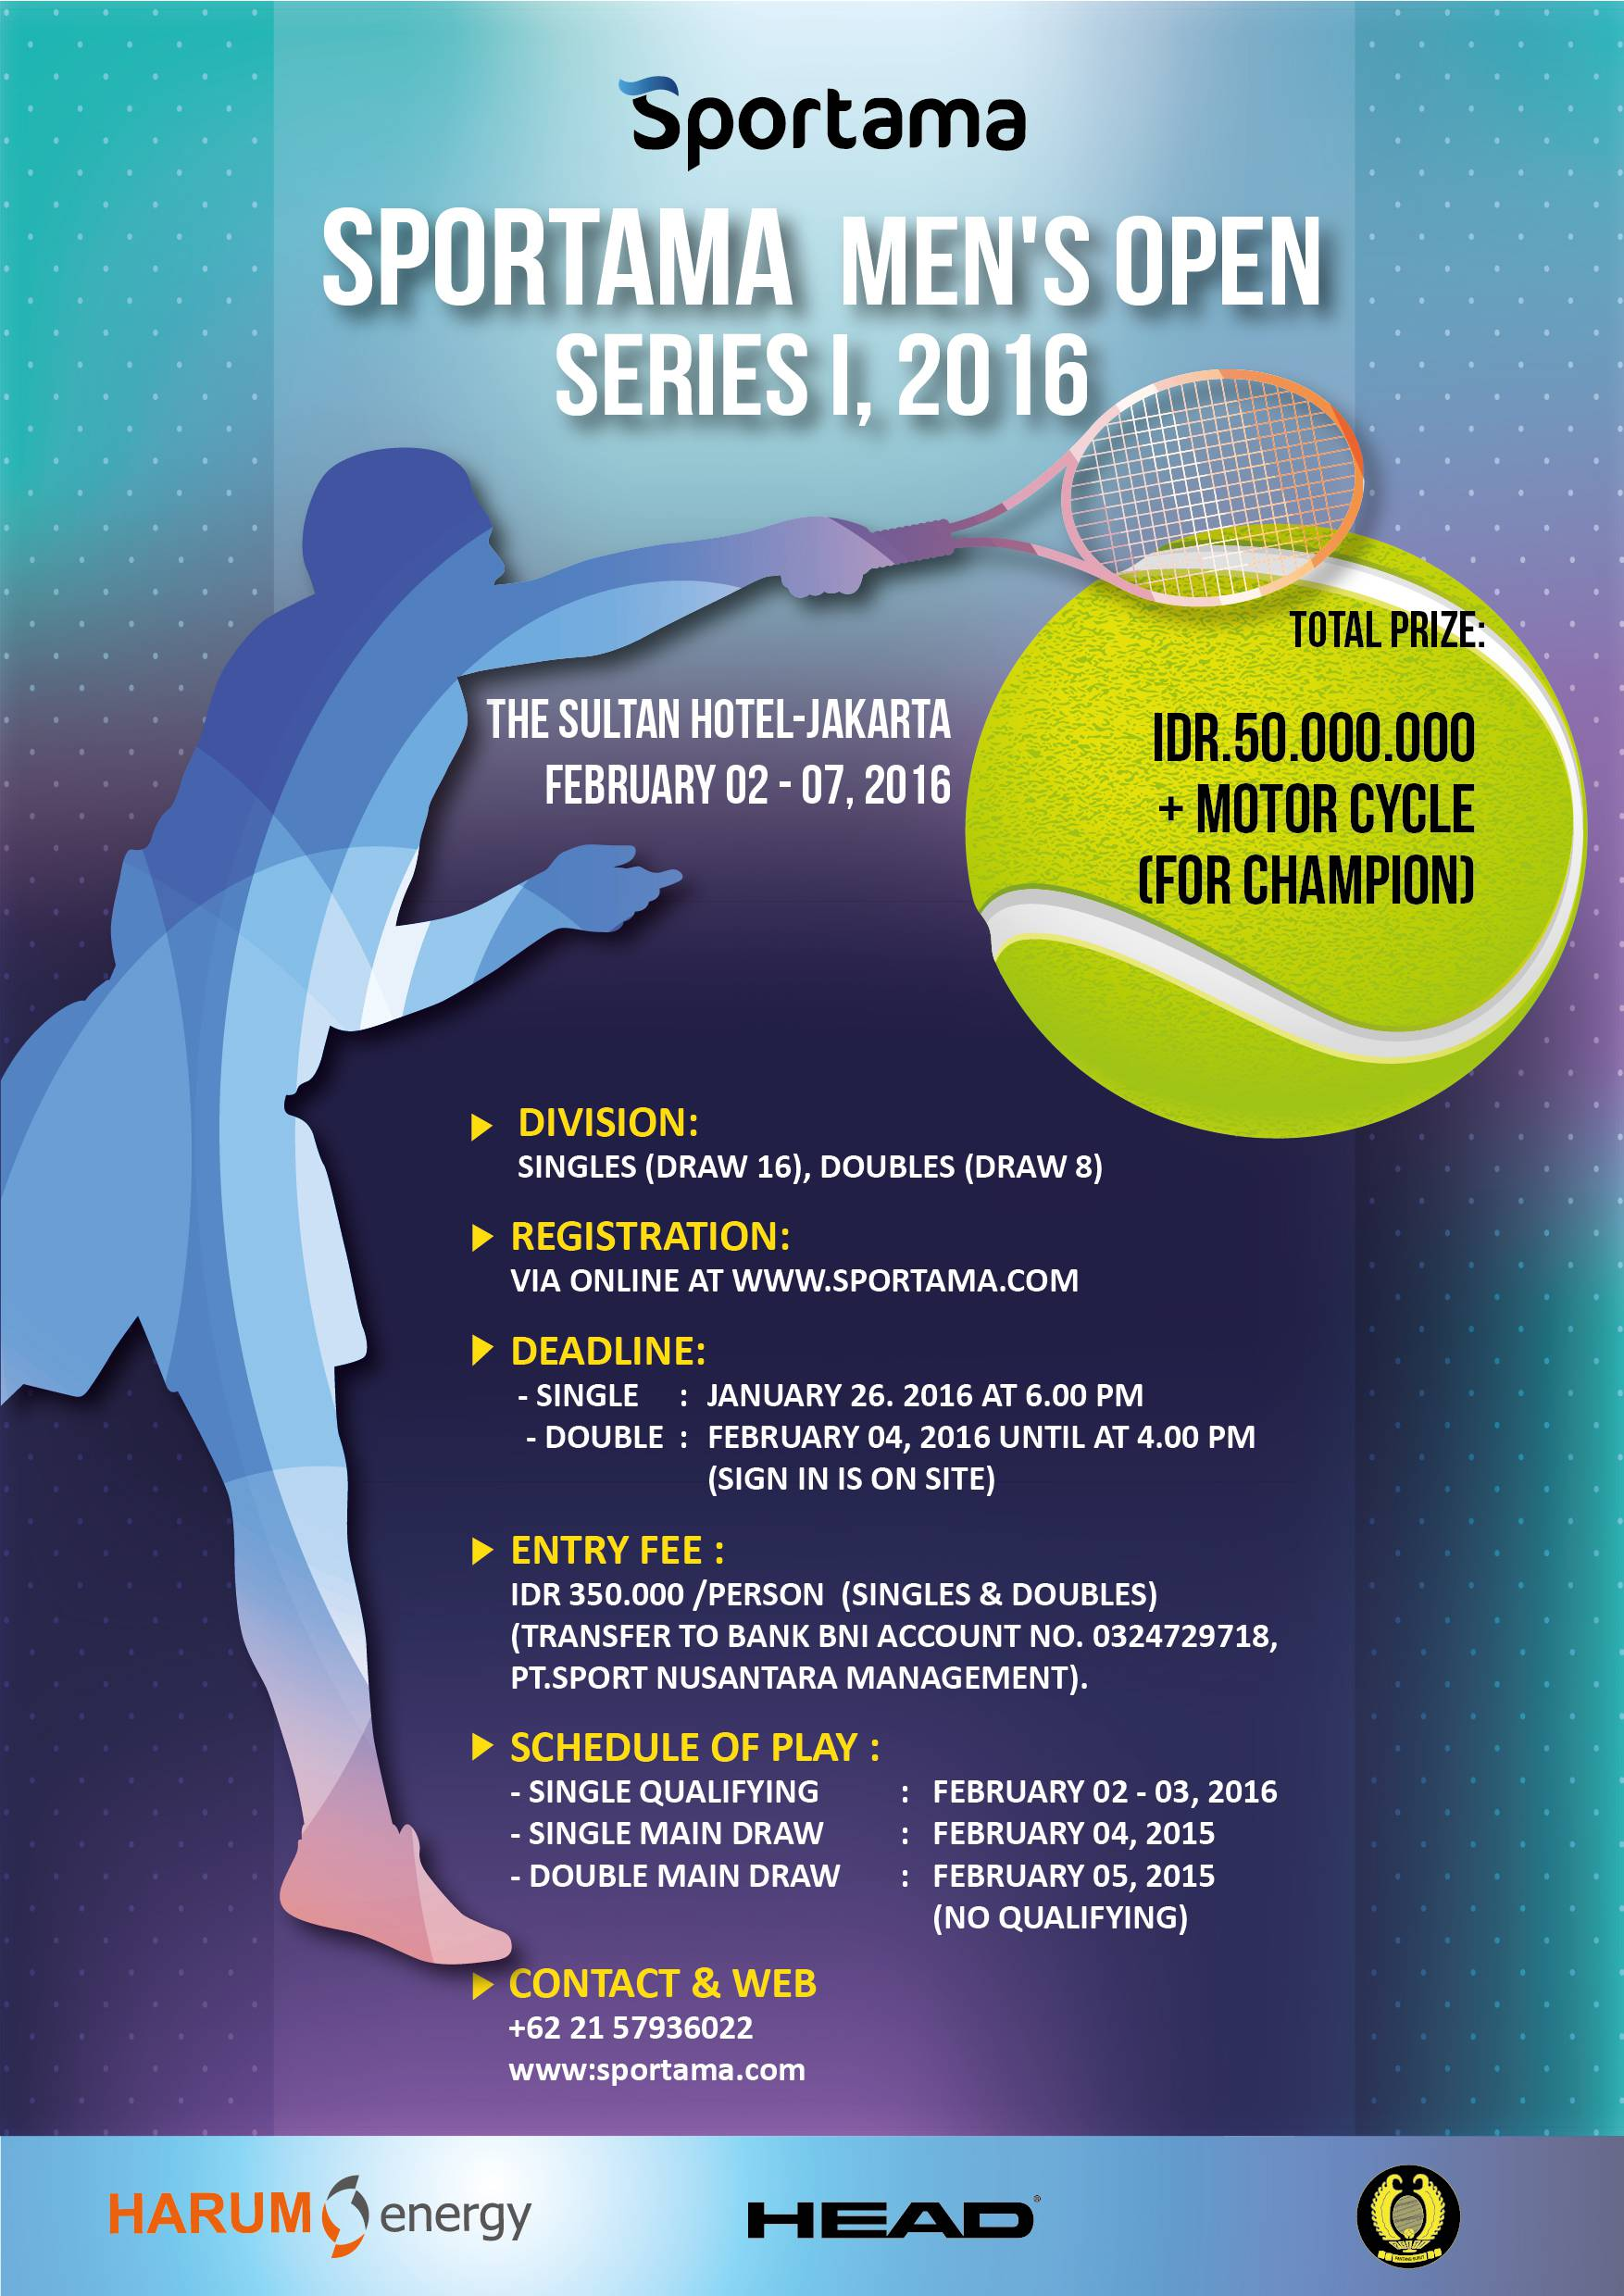 Sportama Men's Open Series I 2016